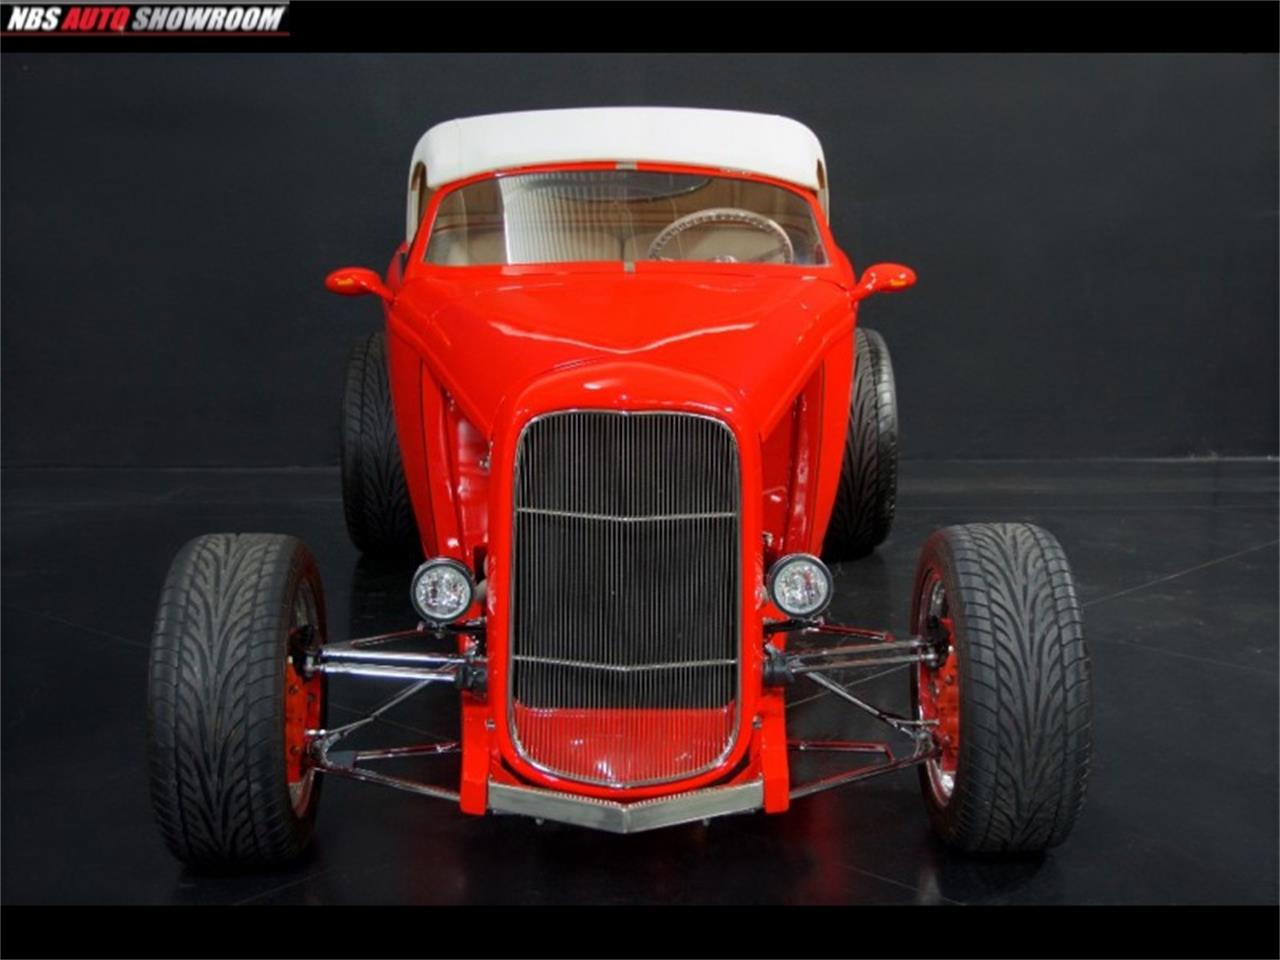 Large Picture of Classic '32 Ford Roadster Offered by NBS Auto Showroom - QY4R